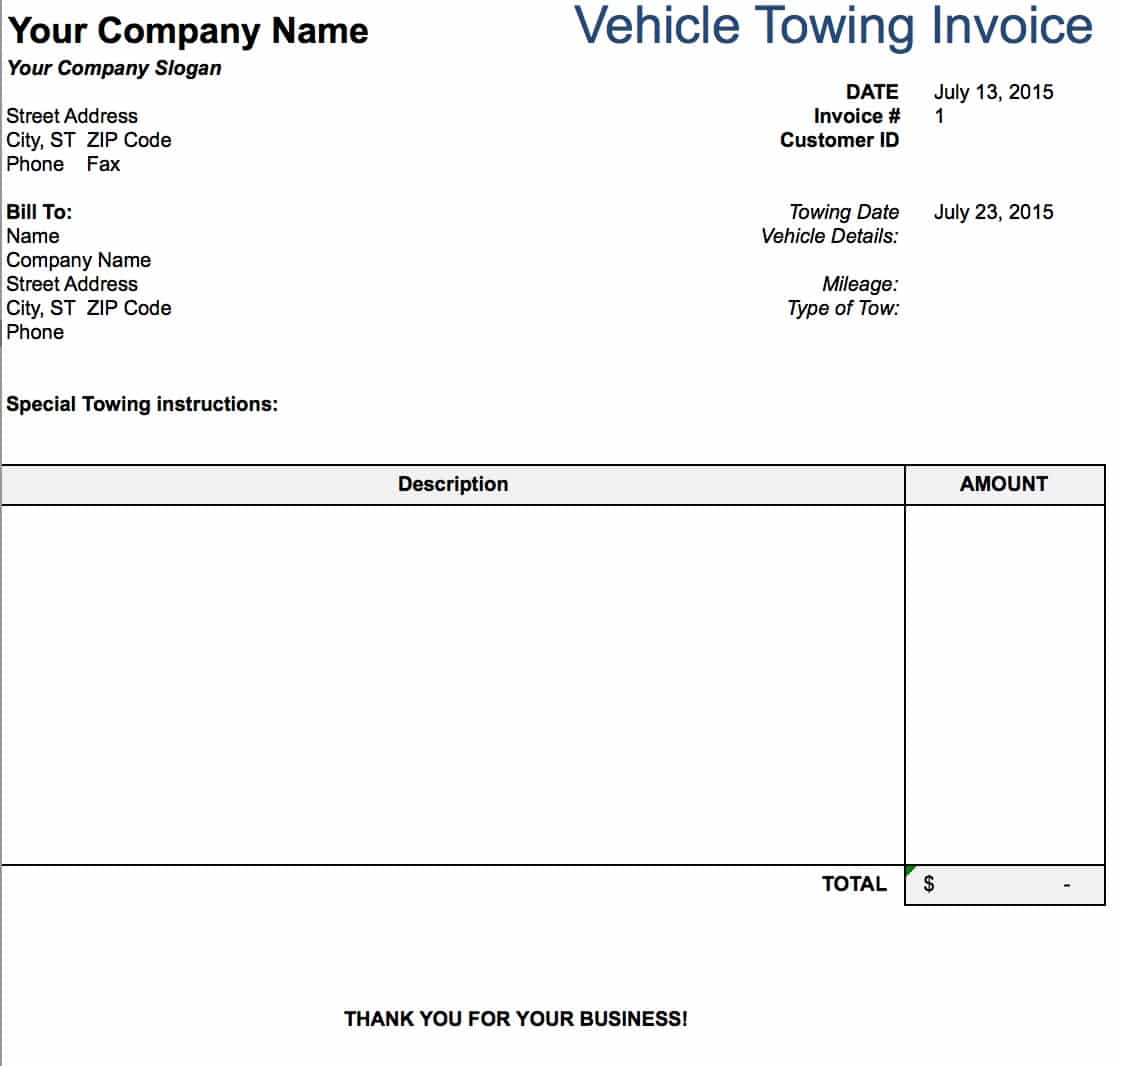 Free Tow Service Invoice Template Excel PDF Word Doc - Free basic invoice template for service business